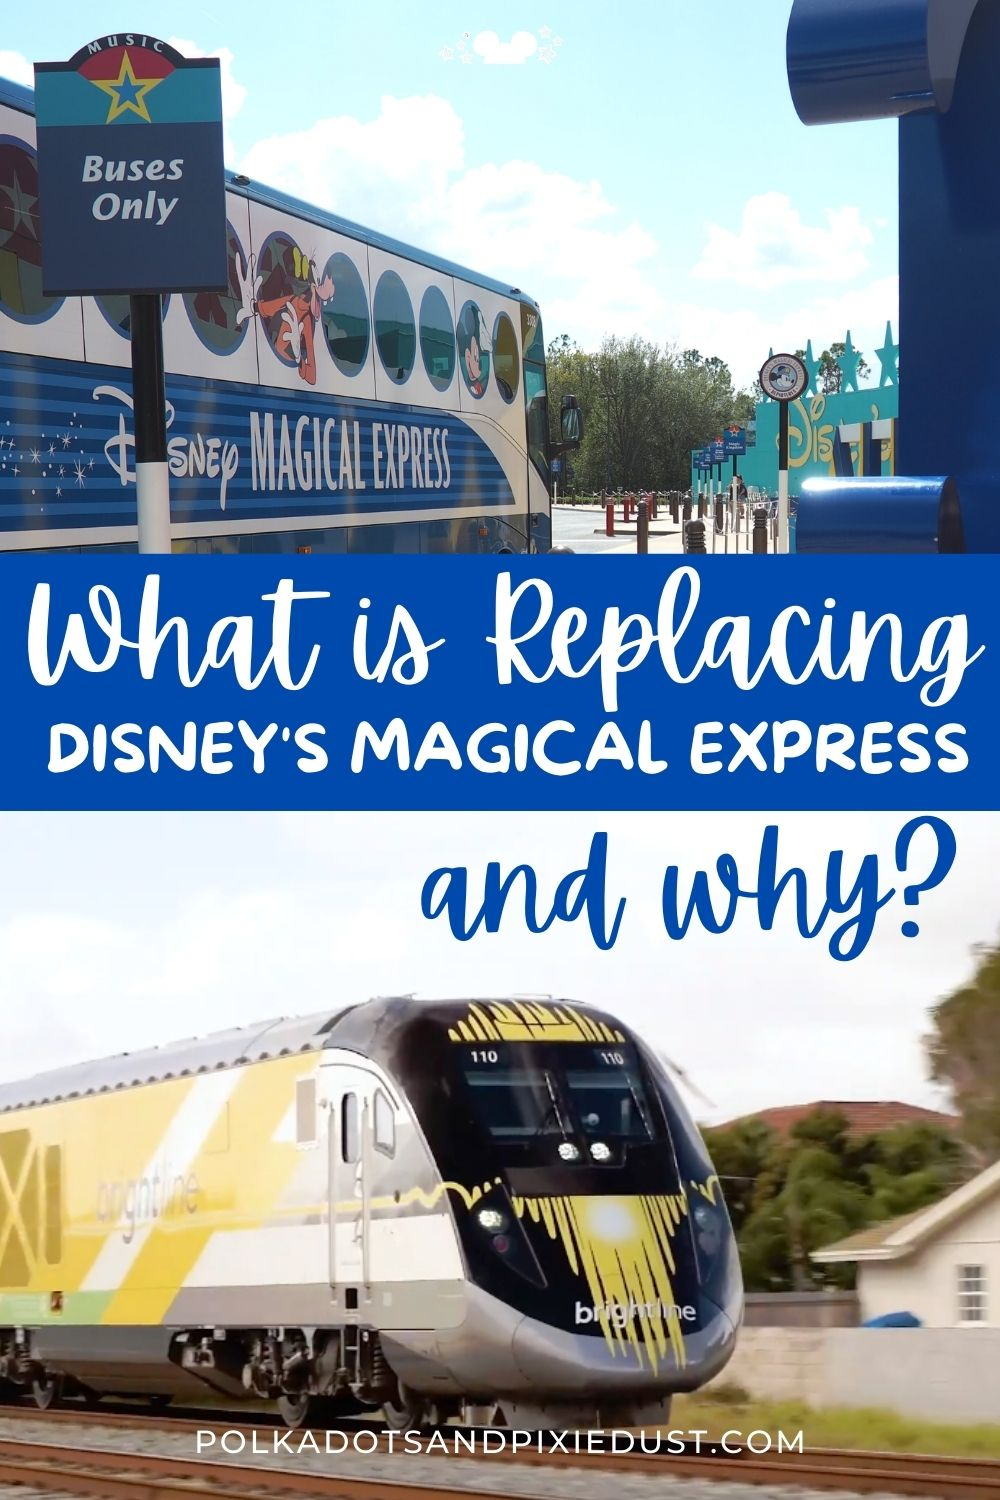 Disney's Magic Express is Retiring in 2021 leaving Disney guests other options to get to and from Orlando International Airport. Check out the details! #polkadotpixies #disneytrain